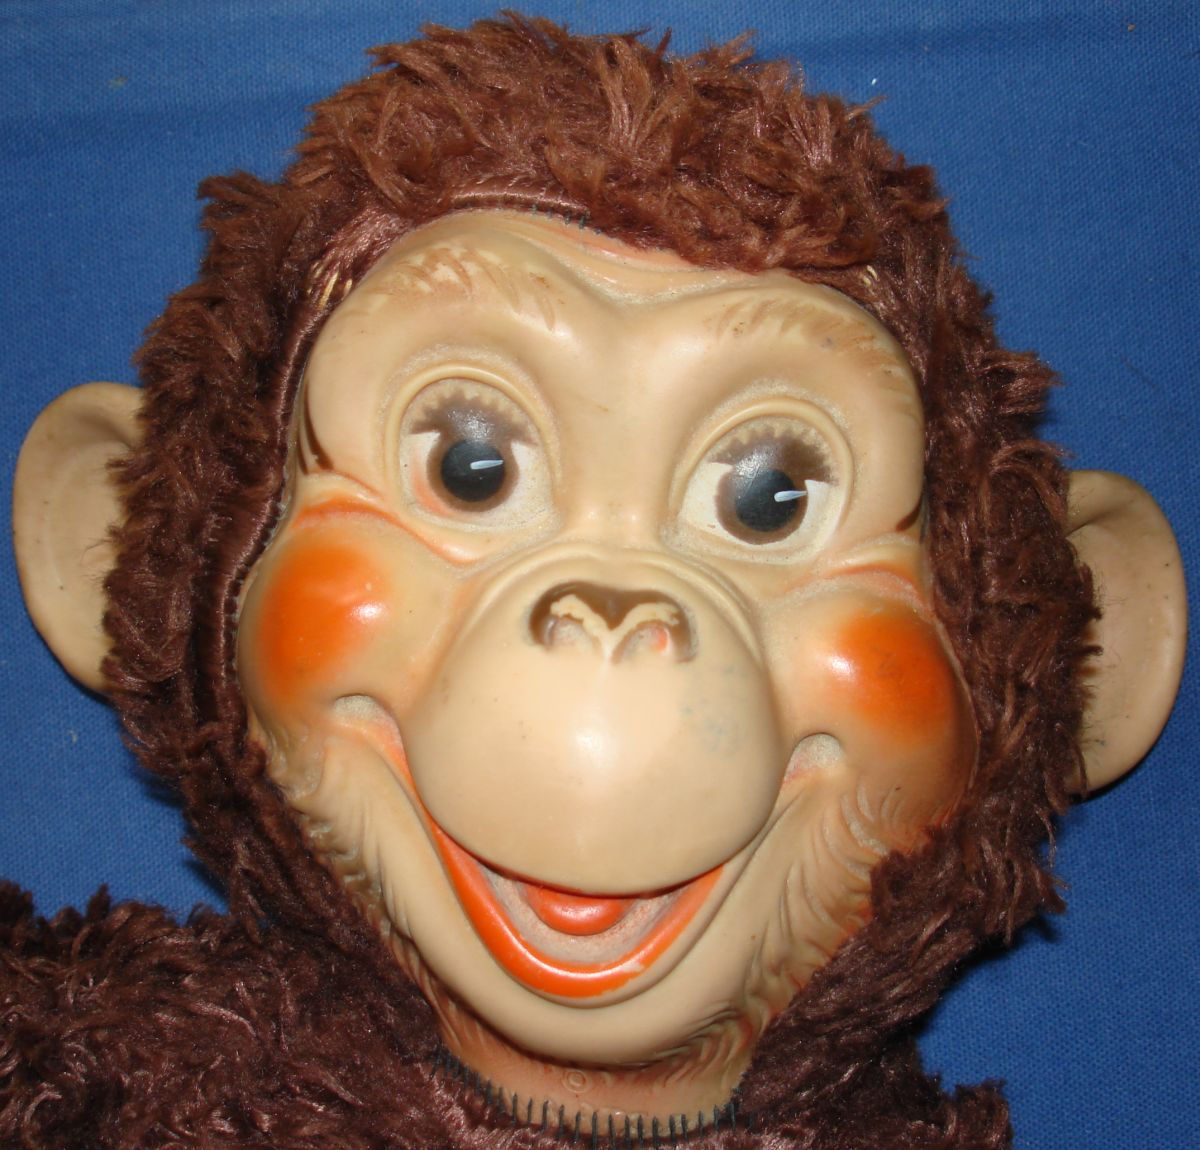 Rubber Vinyl Face Hands Feet Monkey Brown Plush Body Head Closeup